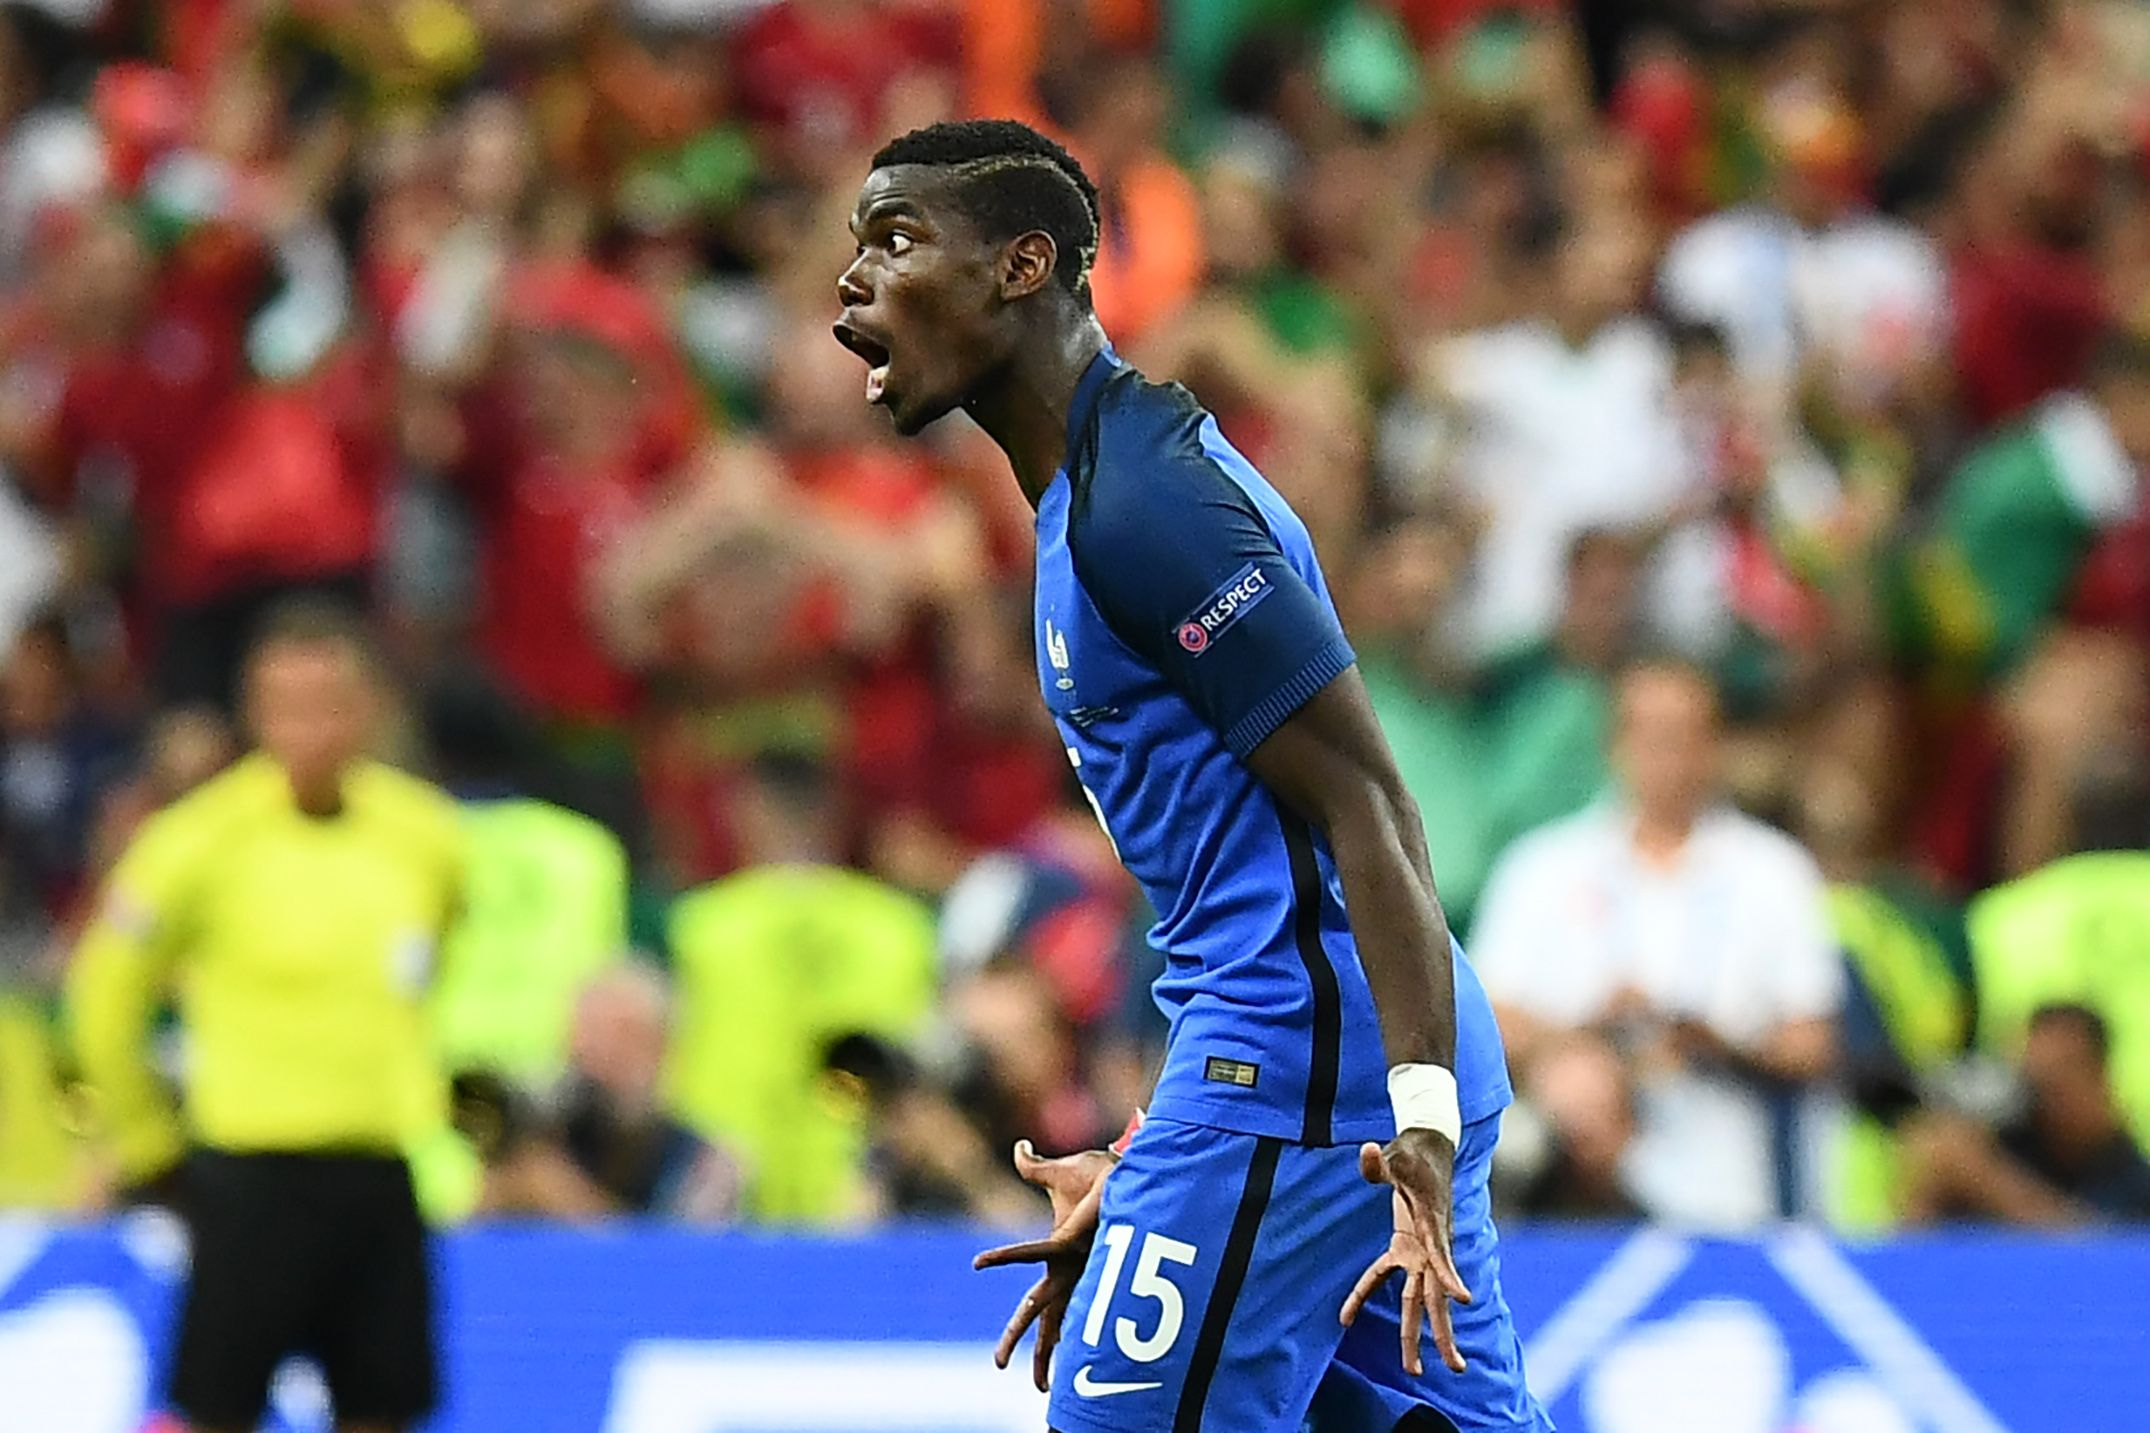 Manchester United transfer target Paul Pogba